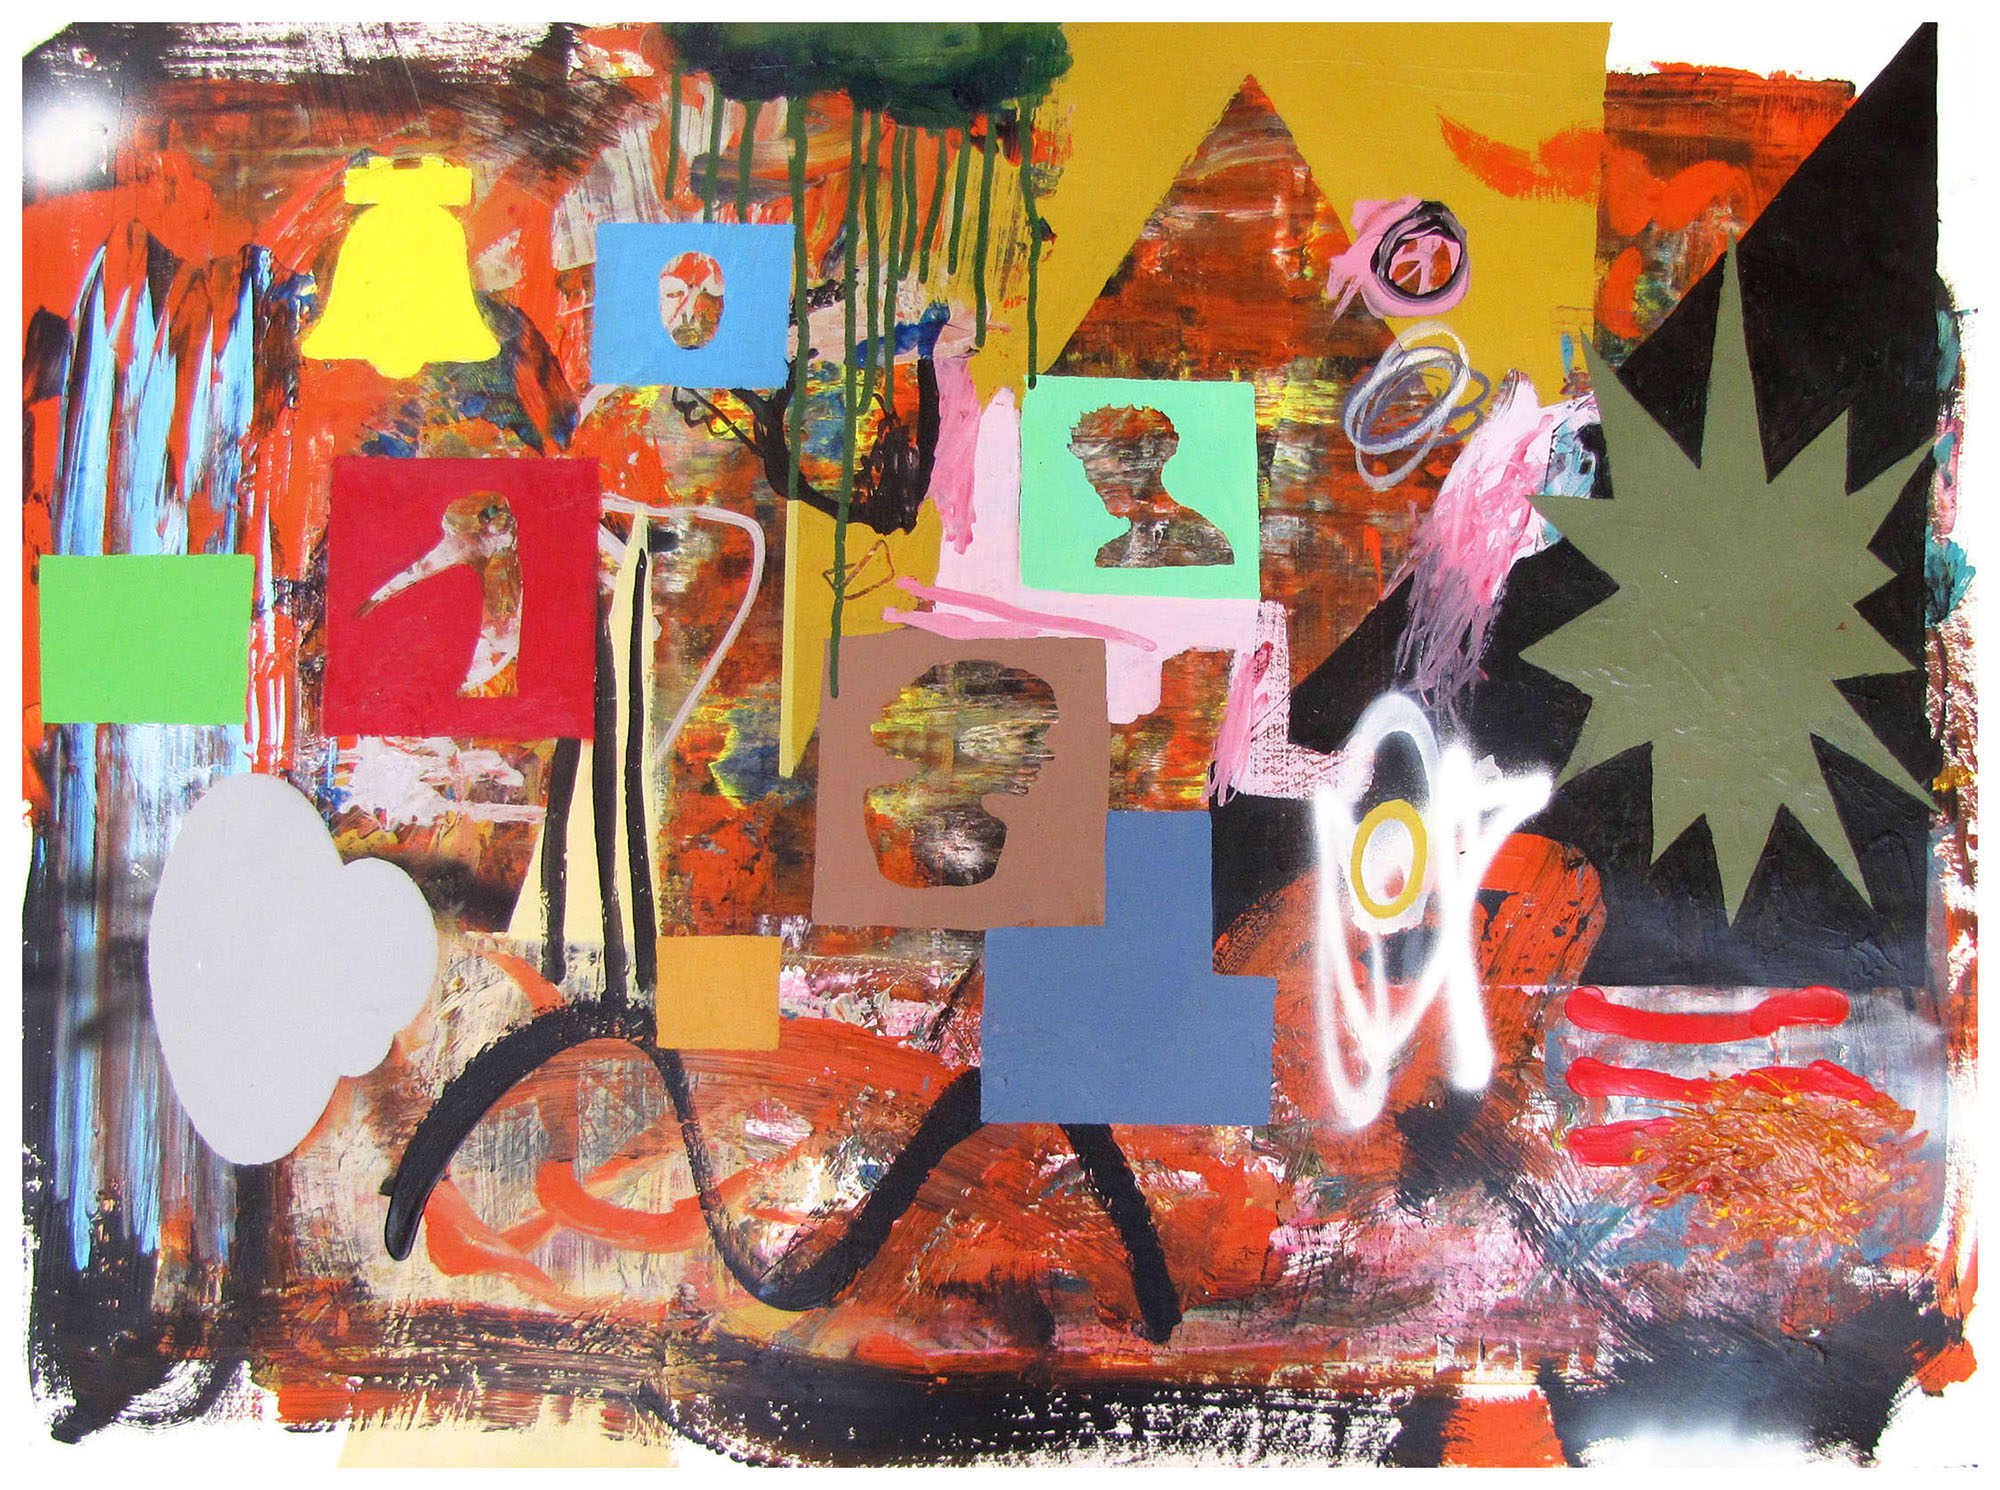 The Bombing of the Innocents , 2001, mixed media on paper, 56 cm x 76 cm